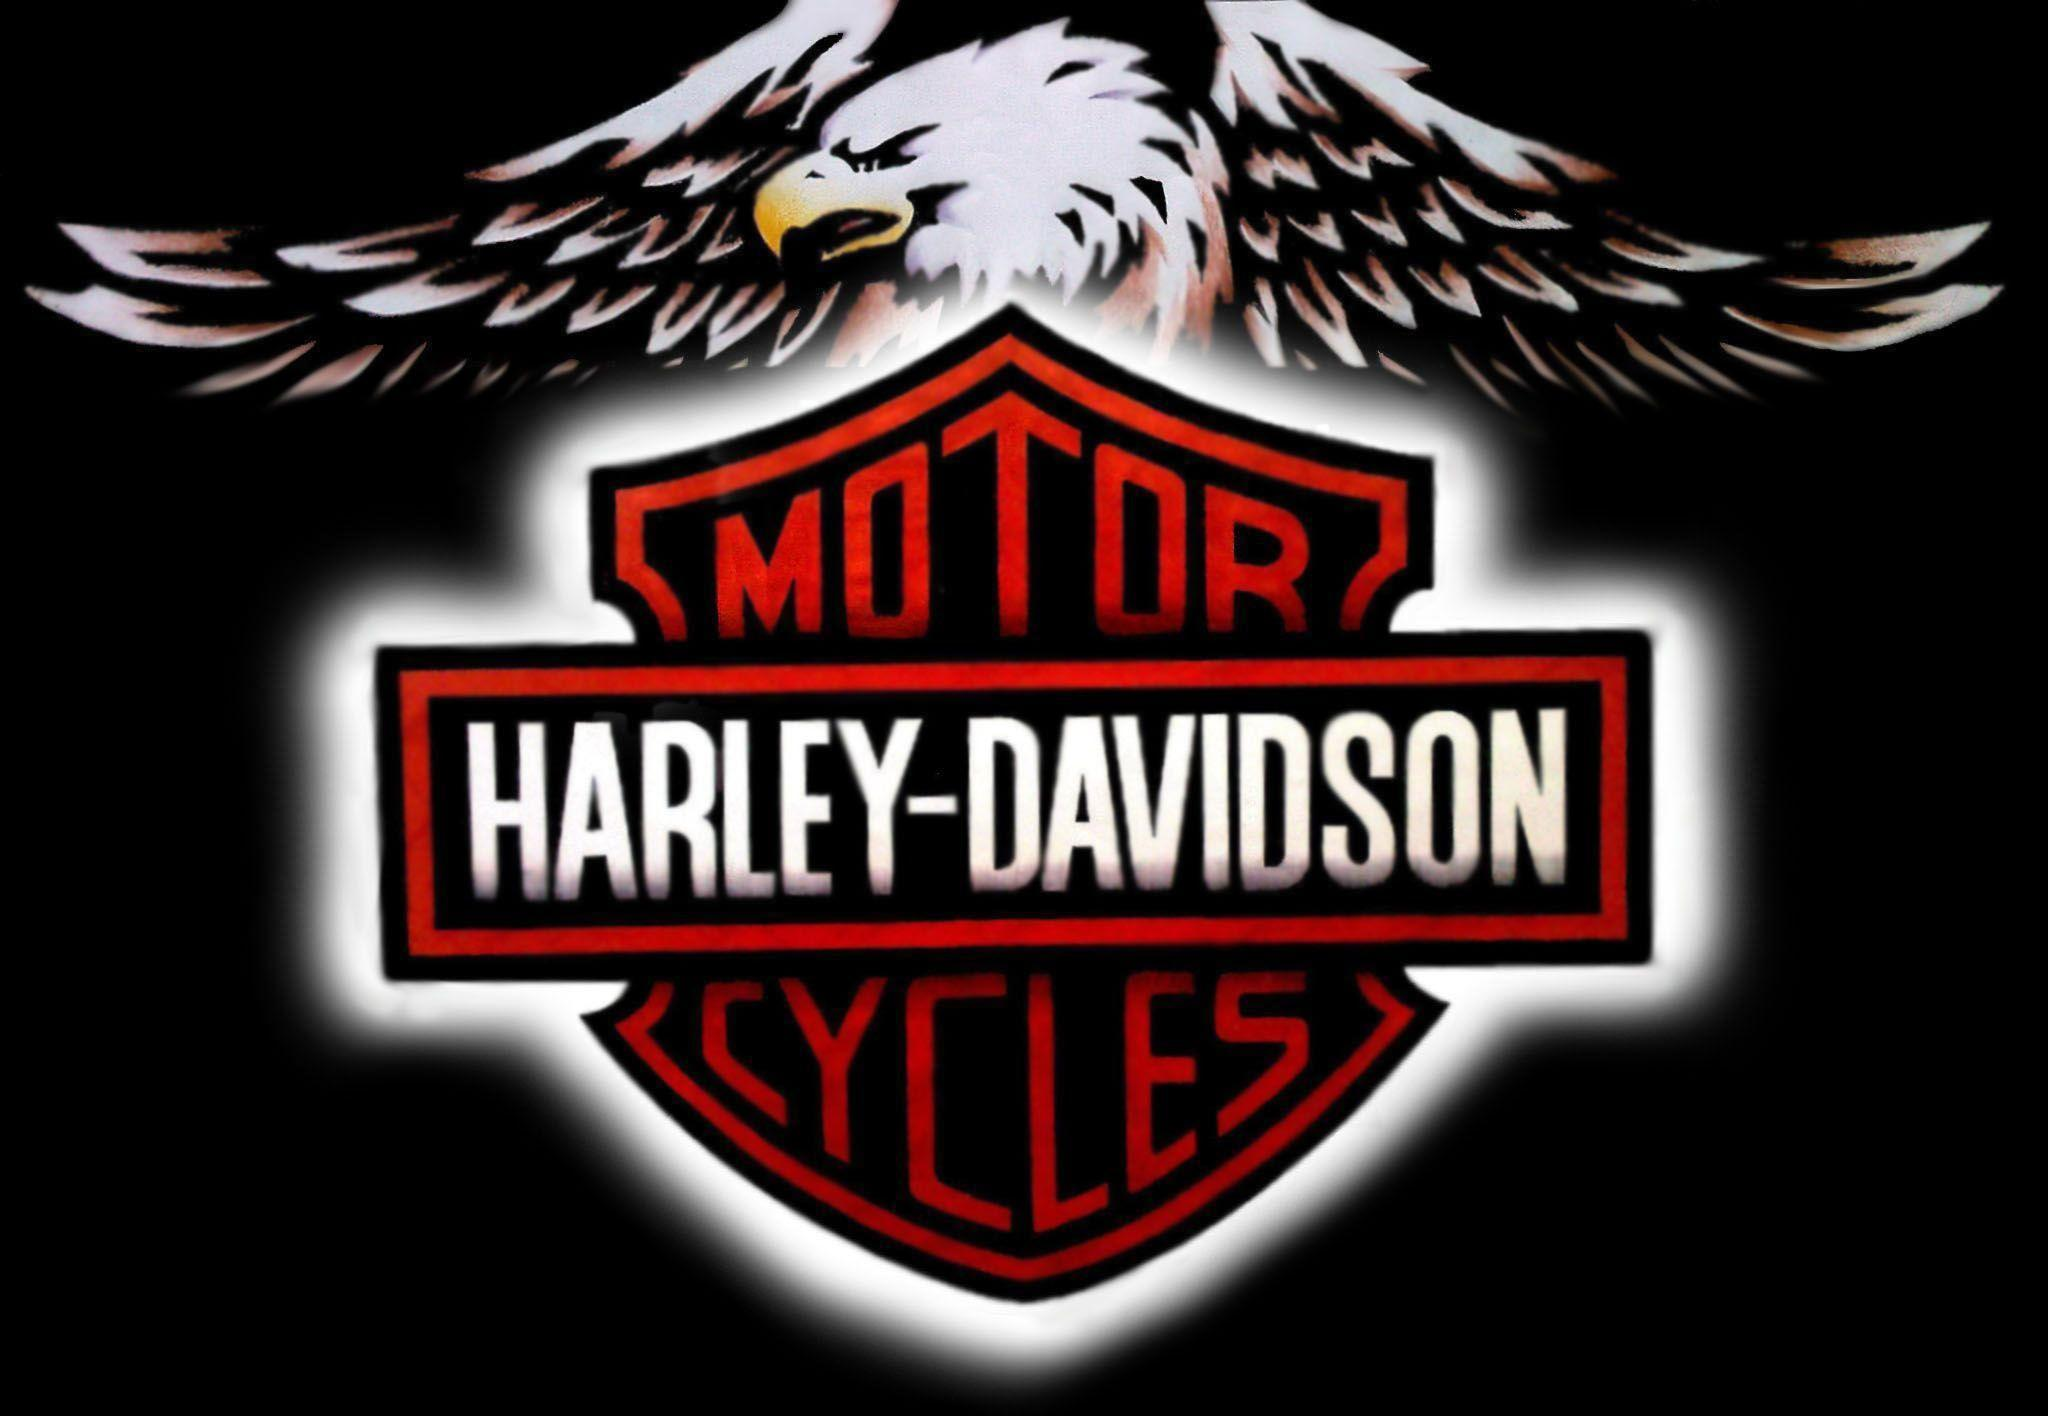 newest harley davidson logo wallpapers - photo #2